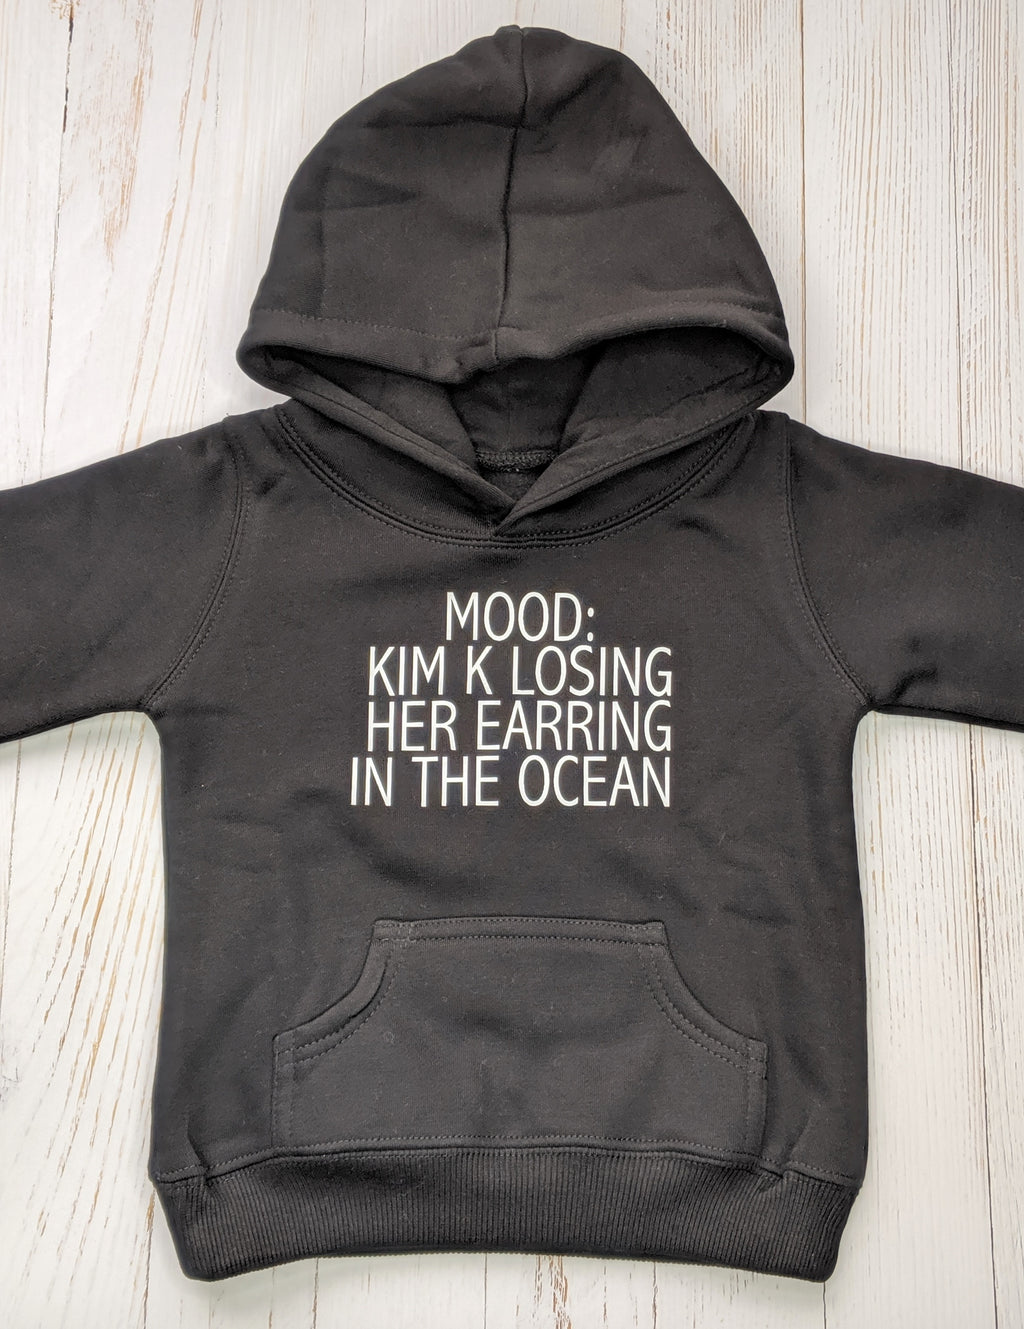 Black hoodie with 'mood: kim k losing her earring in the ocean' printed in white. flatlay on white wooden background